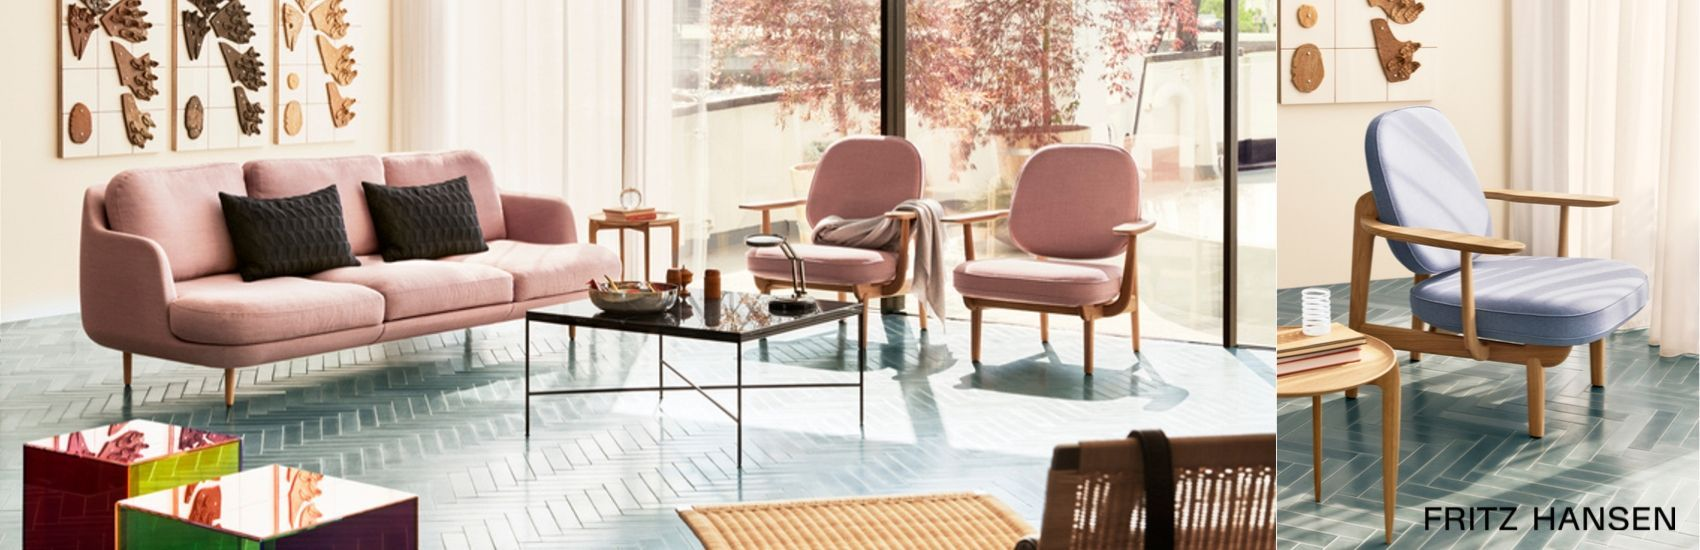 Furniture stores in chapel hill nc -  Shop Knoll Furniture At Palette And Parlor